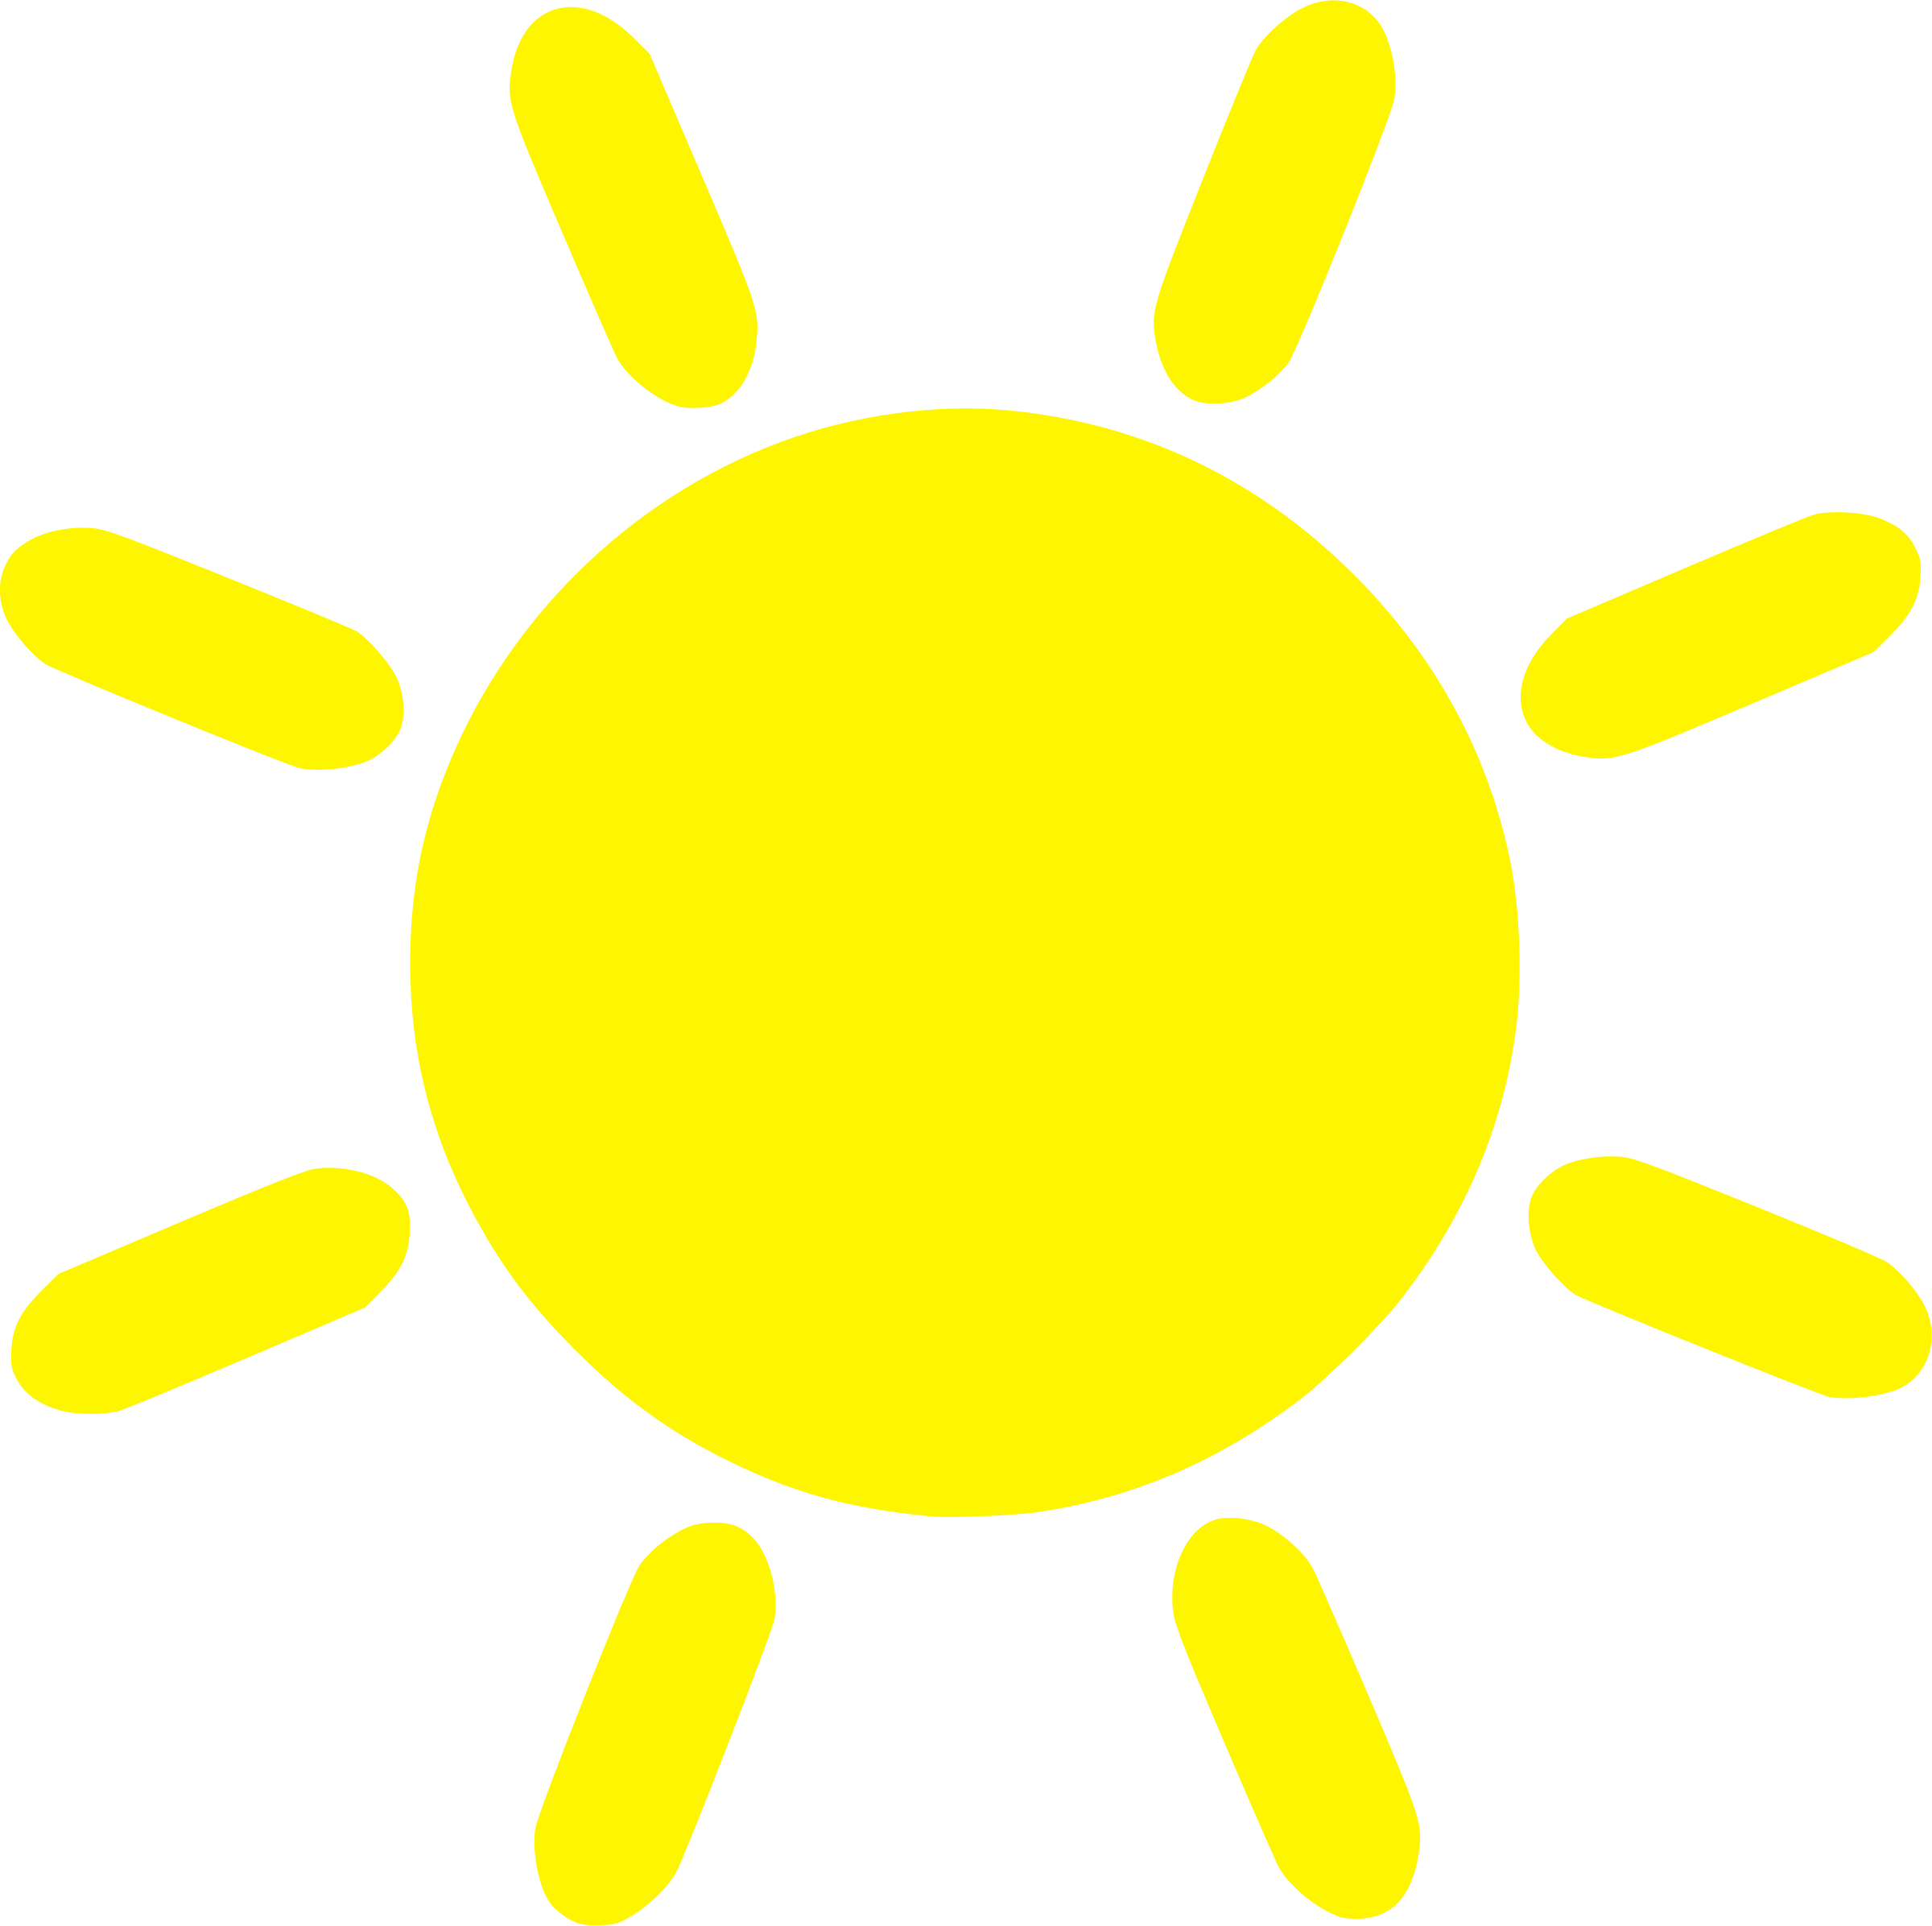 Yellow Sun icon by phidari